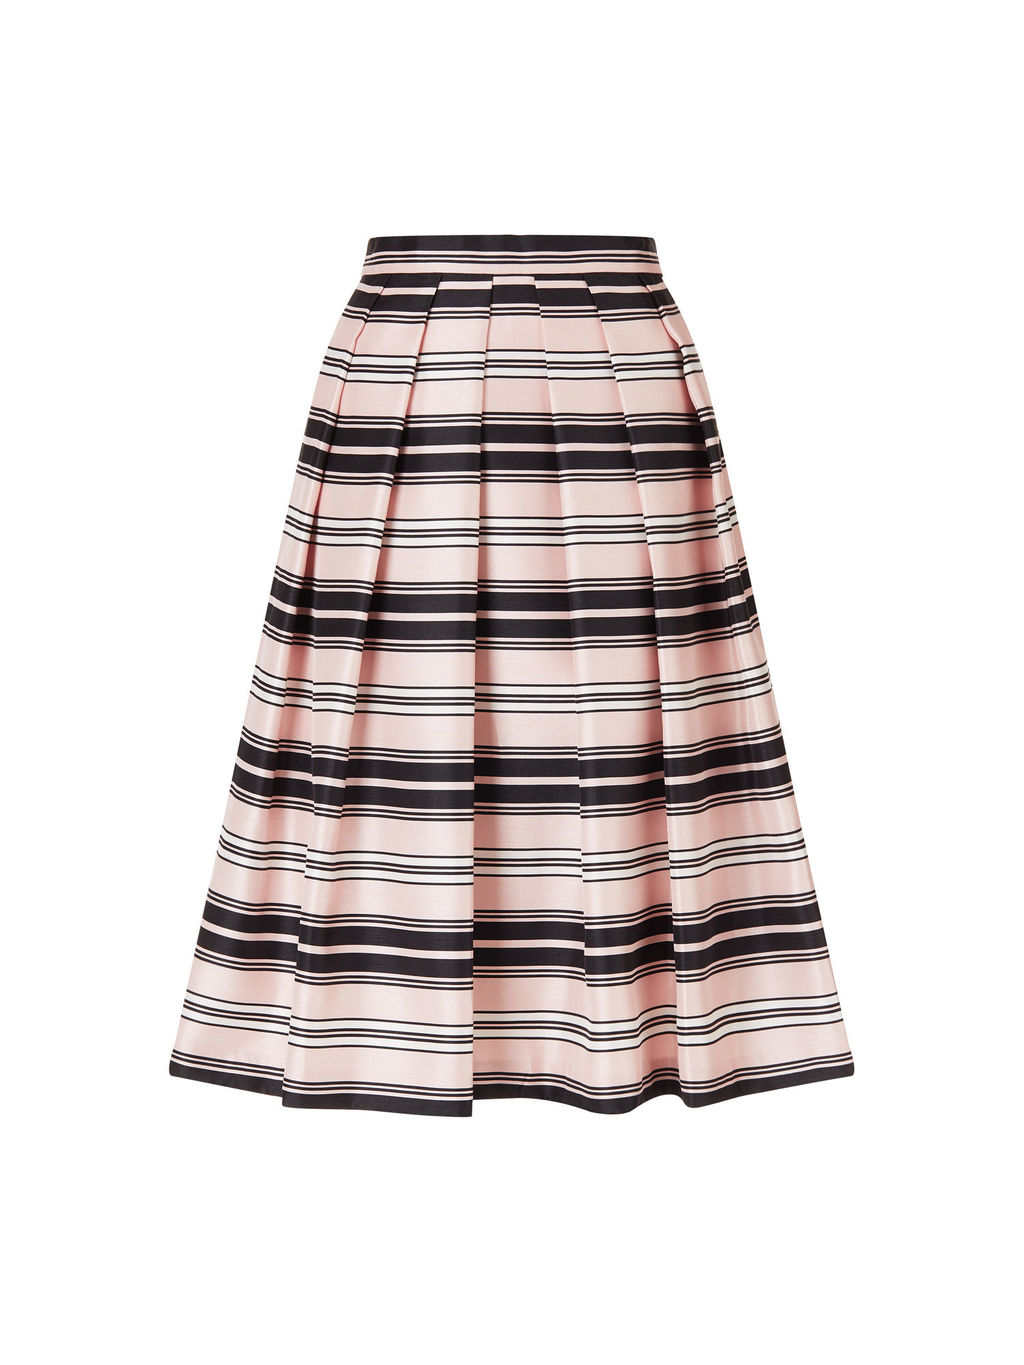 Stripe Prom Skirt - length: below the knee; style: full/prom skirt; fit: loose/voluminous; waist: mid/regular rise; predominant colour: blush; secondary colour: black; occasions: evening; fibres: polyester/polyamide - 100%; pattern type: fabric; texture group: woven light midweight; pattern: horizontal stripes (bottom); multicoloured: multicoloured; season: s/s 2016